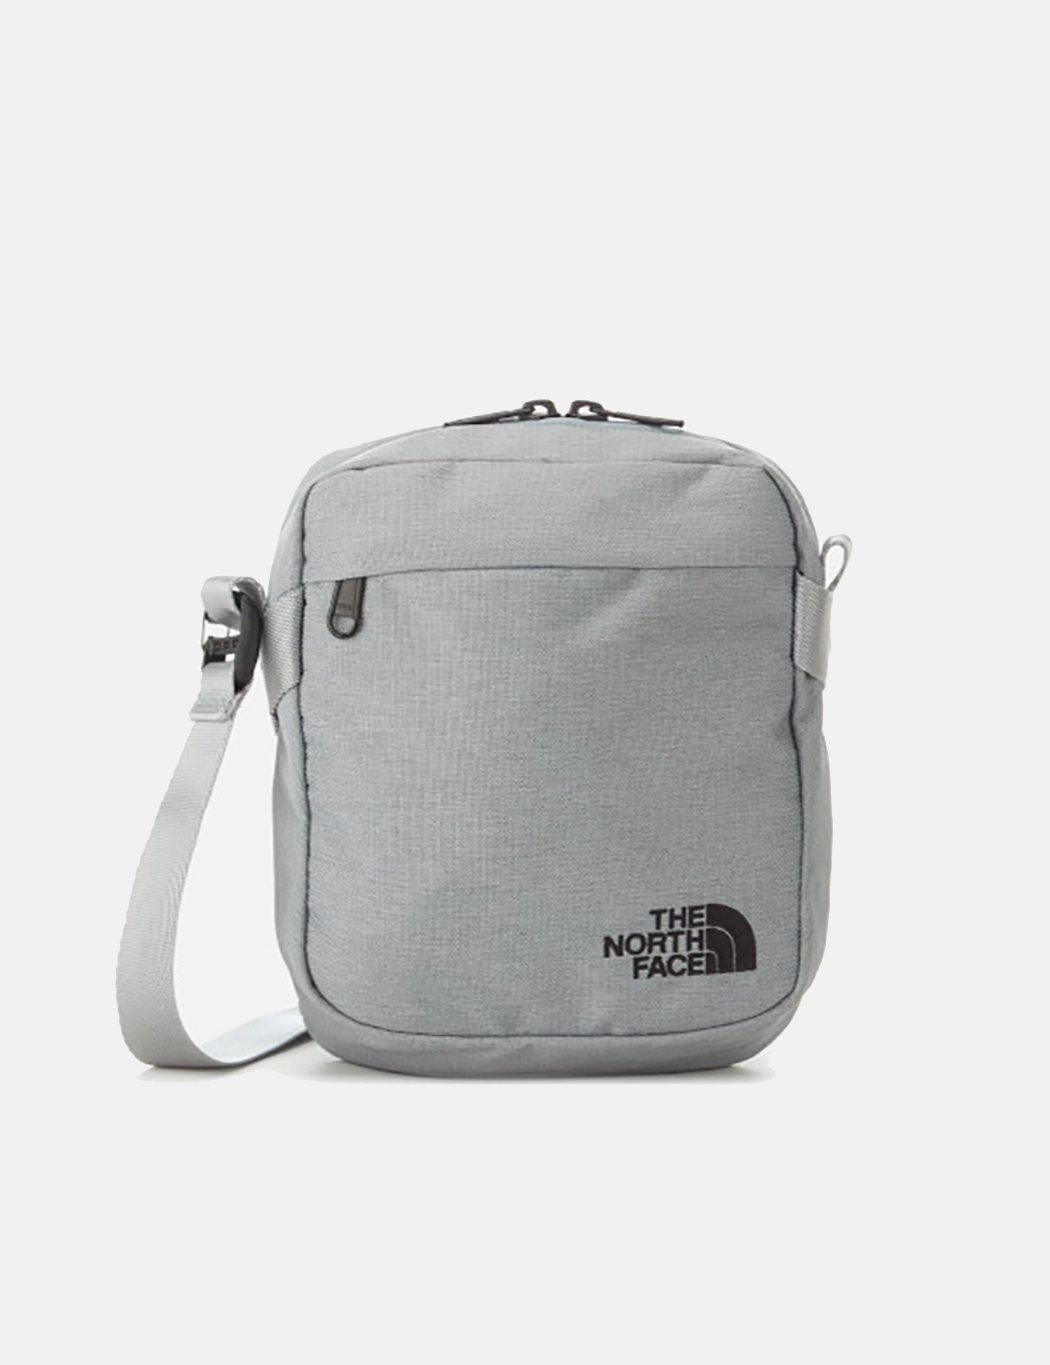 0b27febeddde Lyst - The North Face Convertible Shoulder Bag in Gray for Men - Save 15%